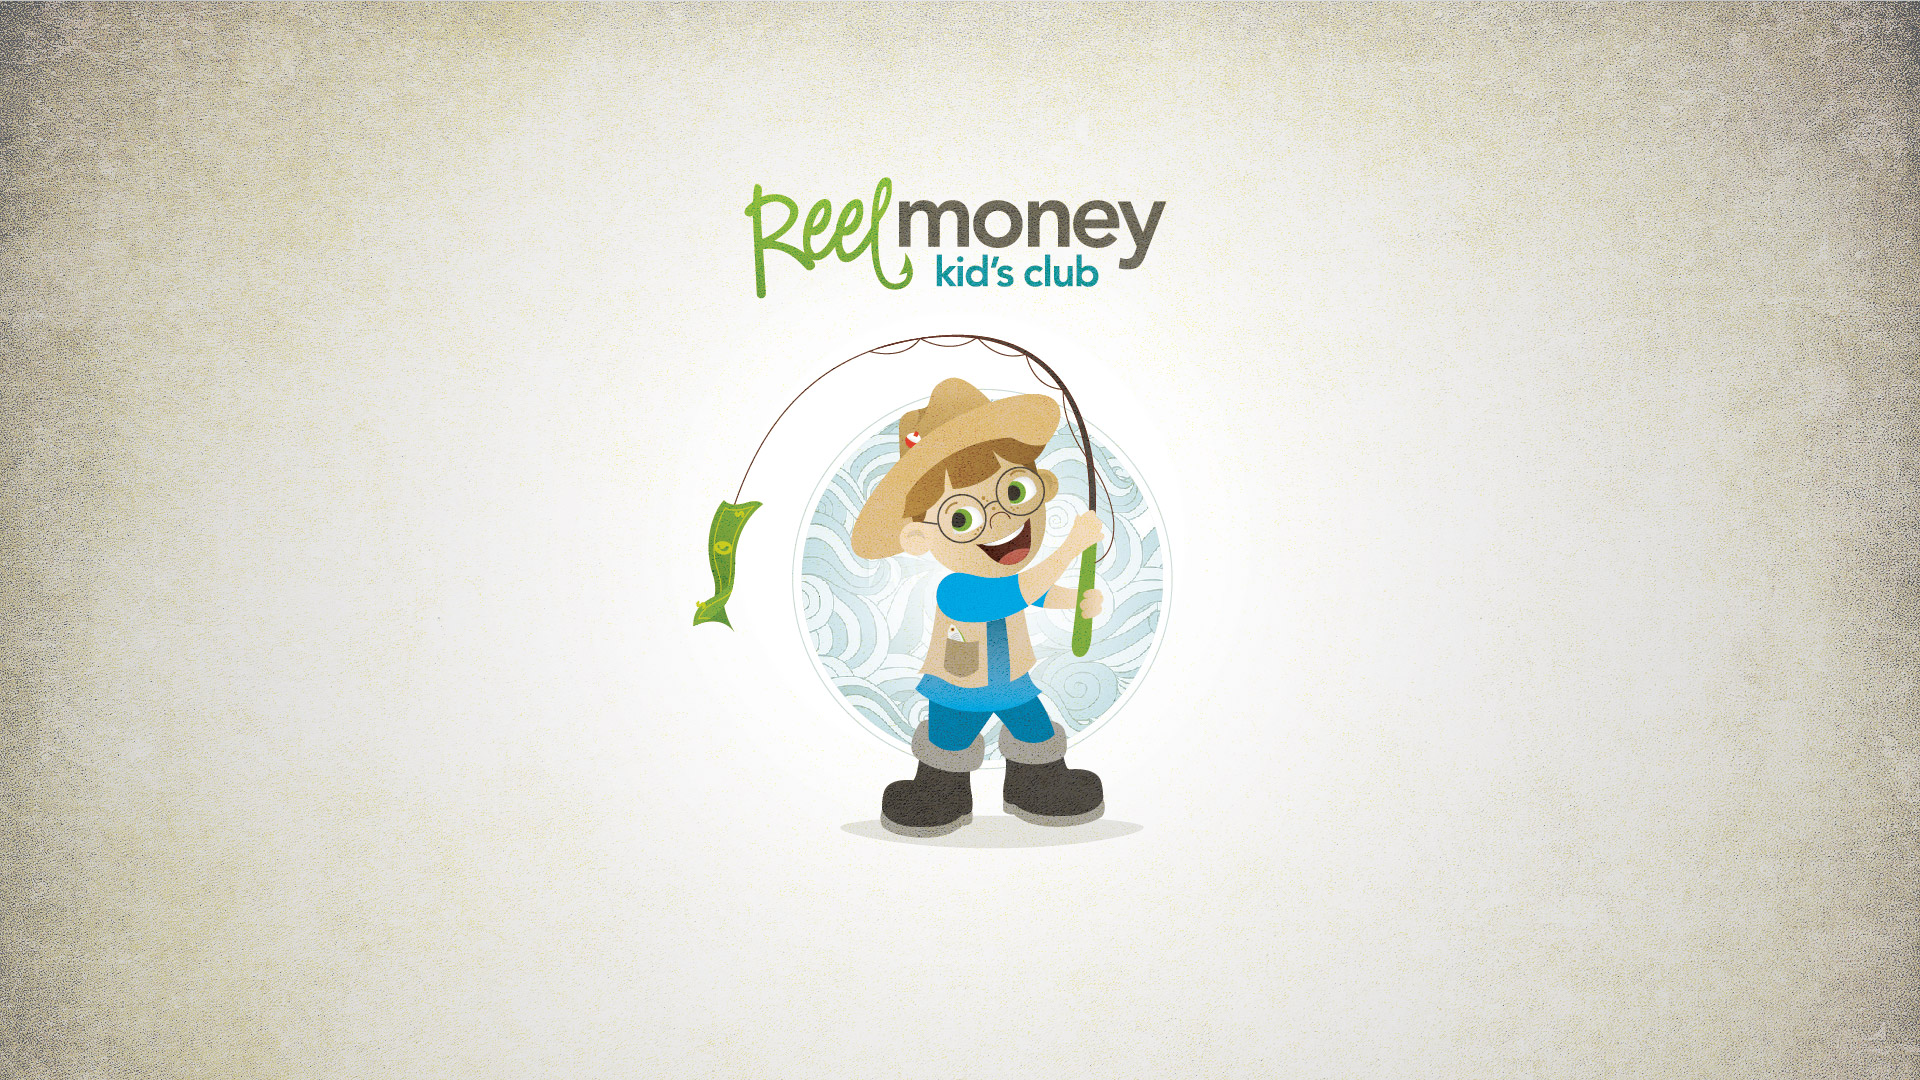 Character illustration of Gil, the Community South Reel Money Kids Club mascot.